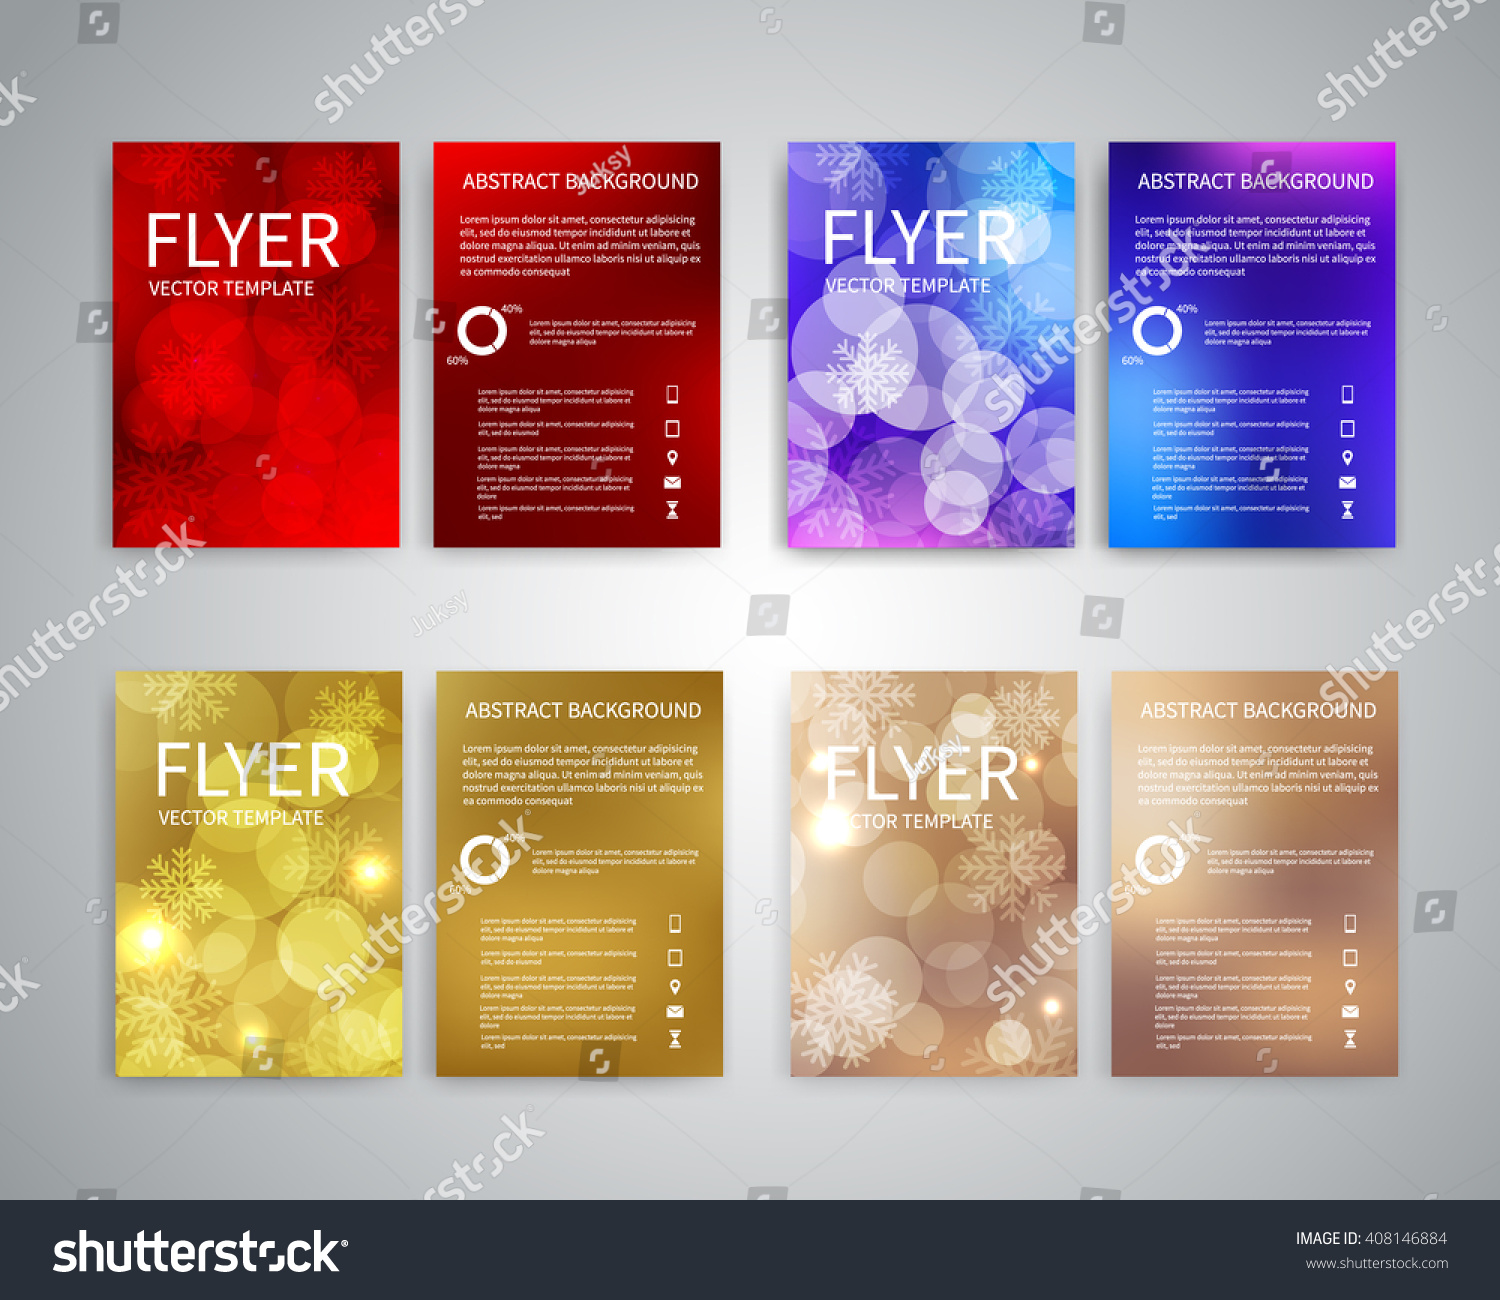 christmas flyer design templates set of a brochure flyer design christmas flyer design templates set of a4 brochure flyer design templates bokeh lights and